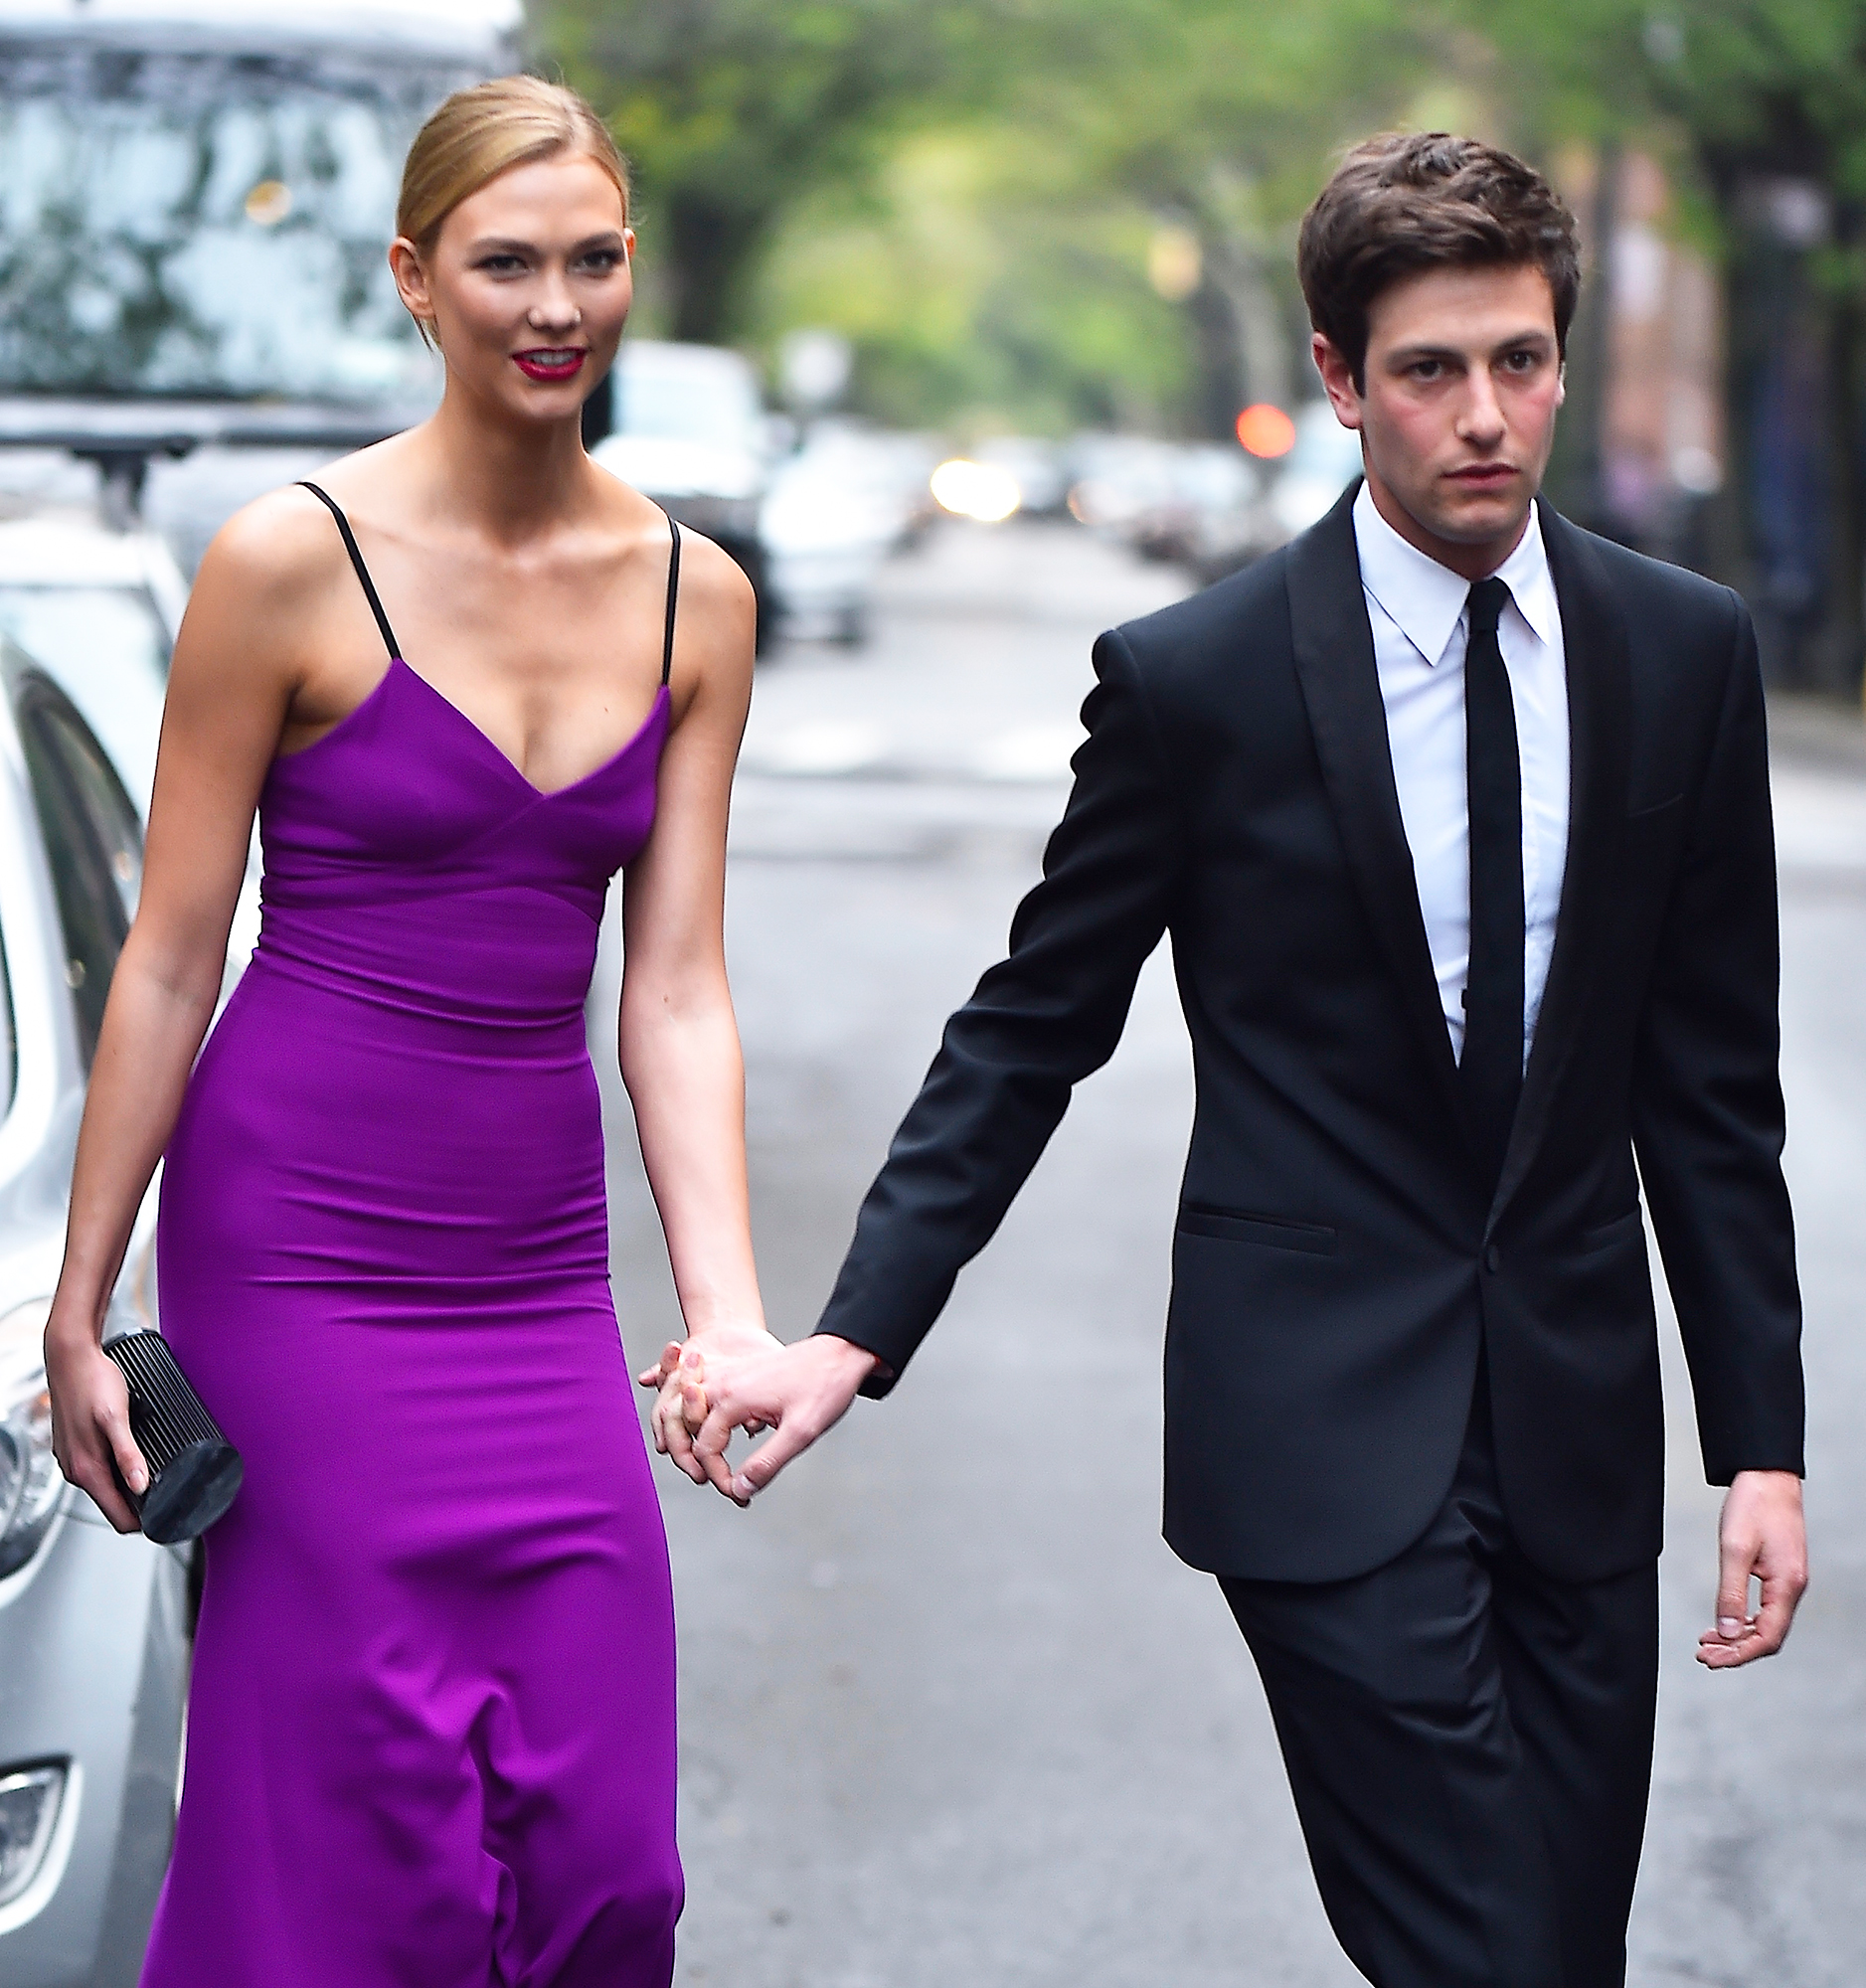 Meghan Markle, Karlie Kloss and More Celebrities Who've Married Into Political Families - The supermodel and the businessman tied the knot in October 2018. Kushner's extended family is well-known in the political world, as his brother, Jared, is married to Ivanka Trump.